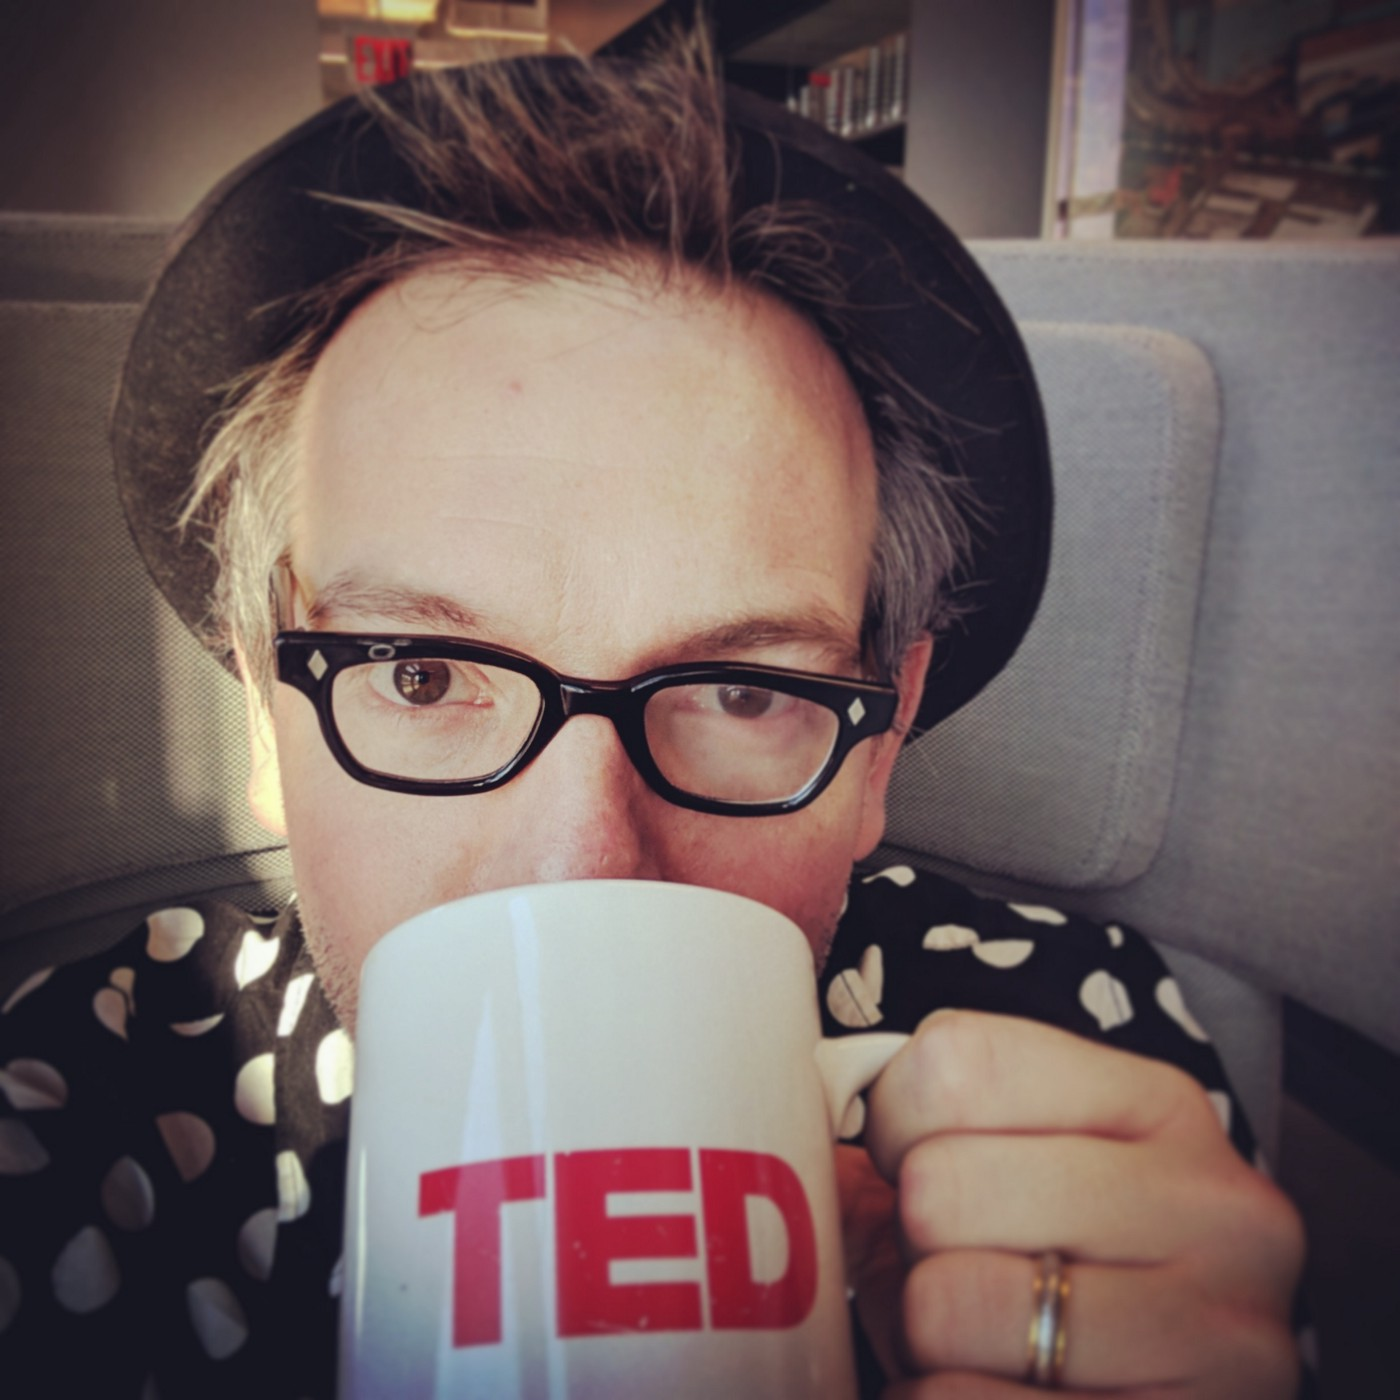 Selfie of author wearing vintage spectacles, bowler and a black-and-white polka dot shirt sips coffee from a TED mug